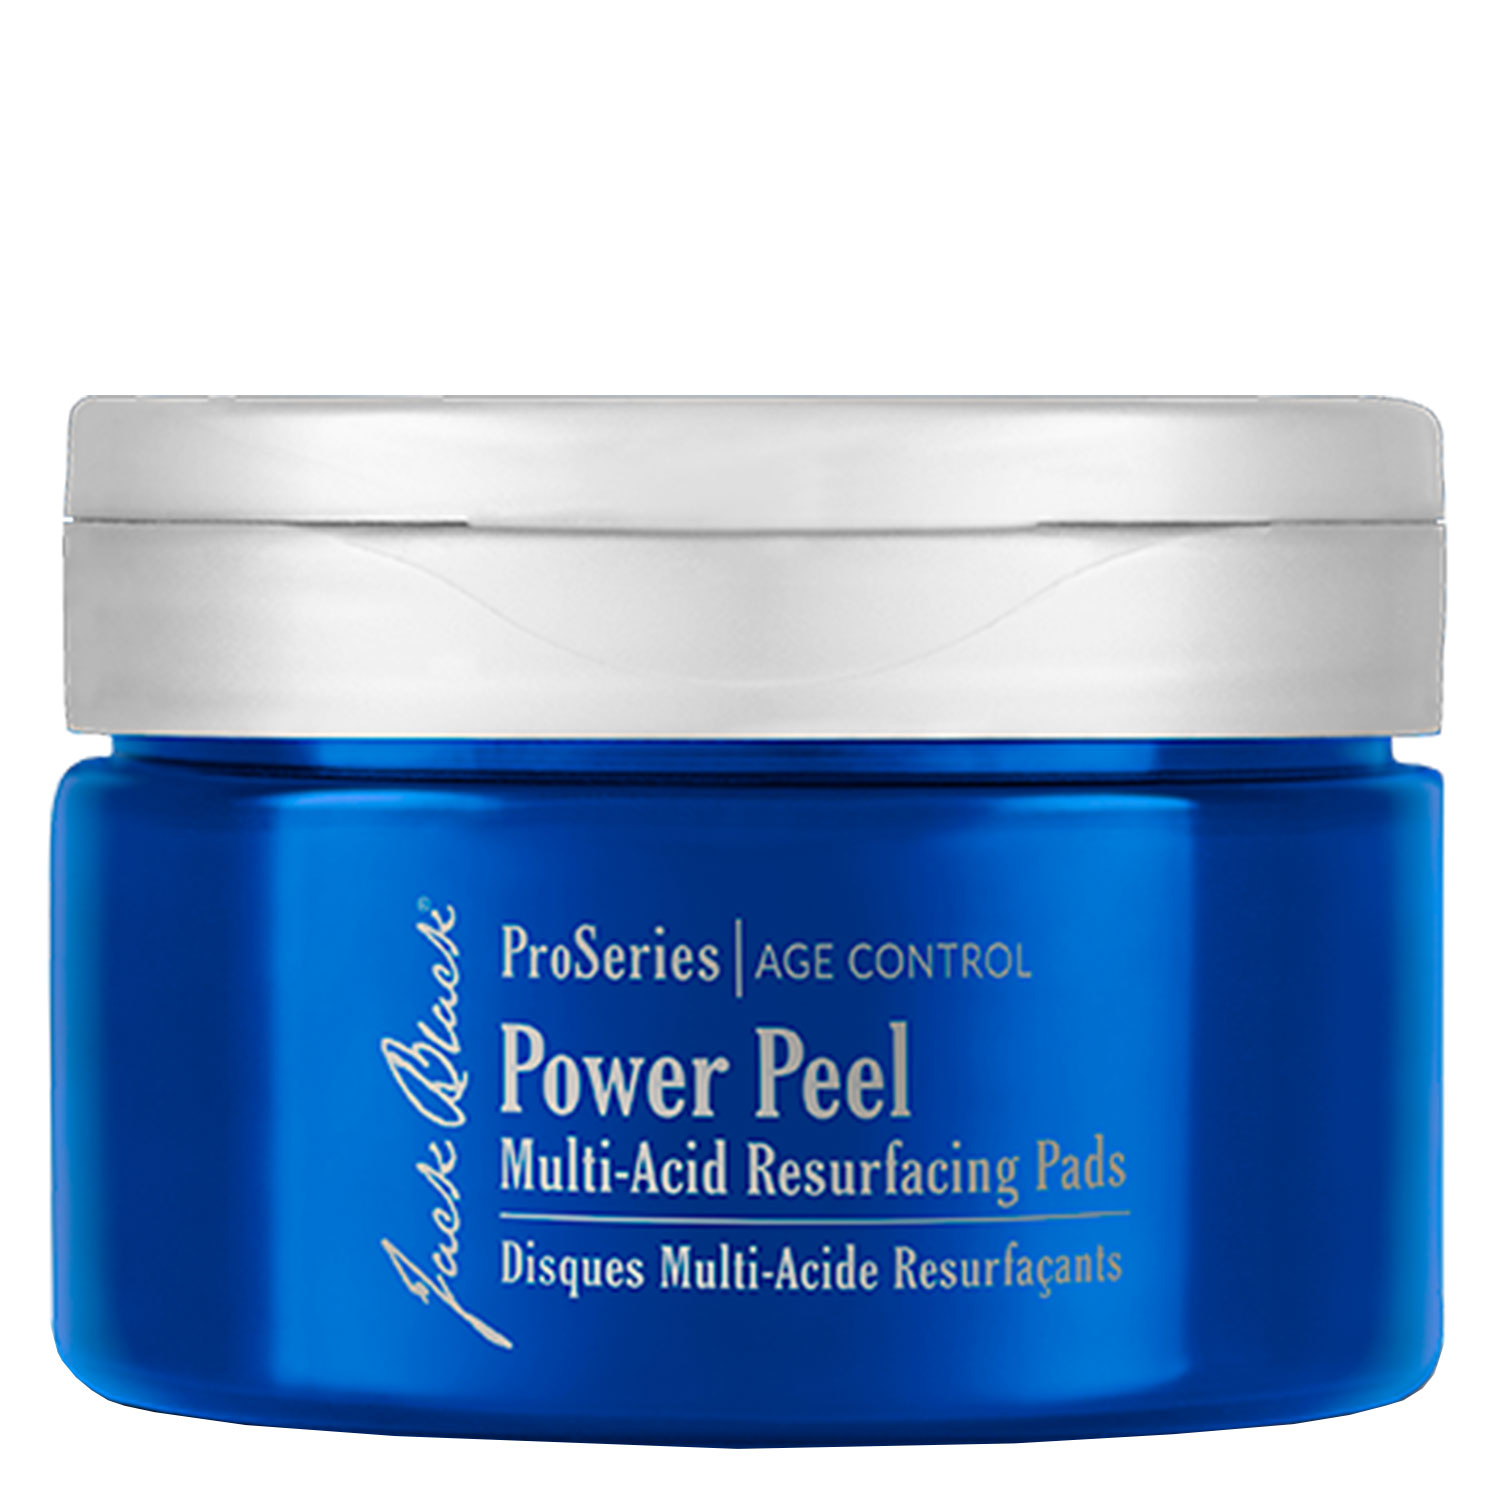 ProSeries Age Control - Power Peel Pads